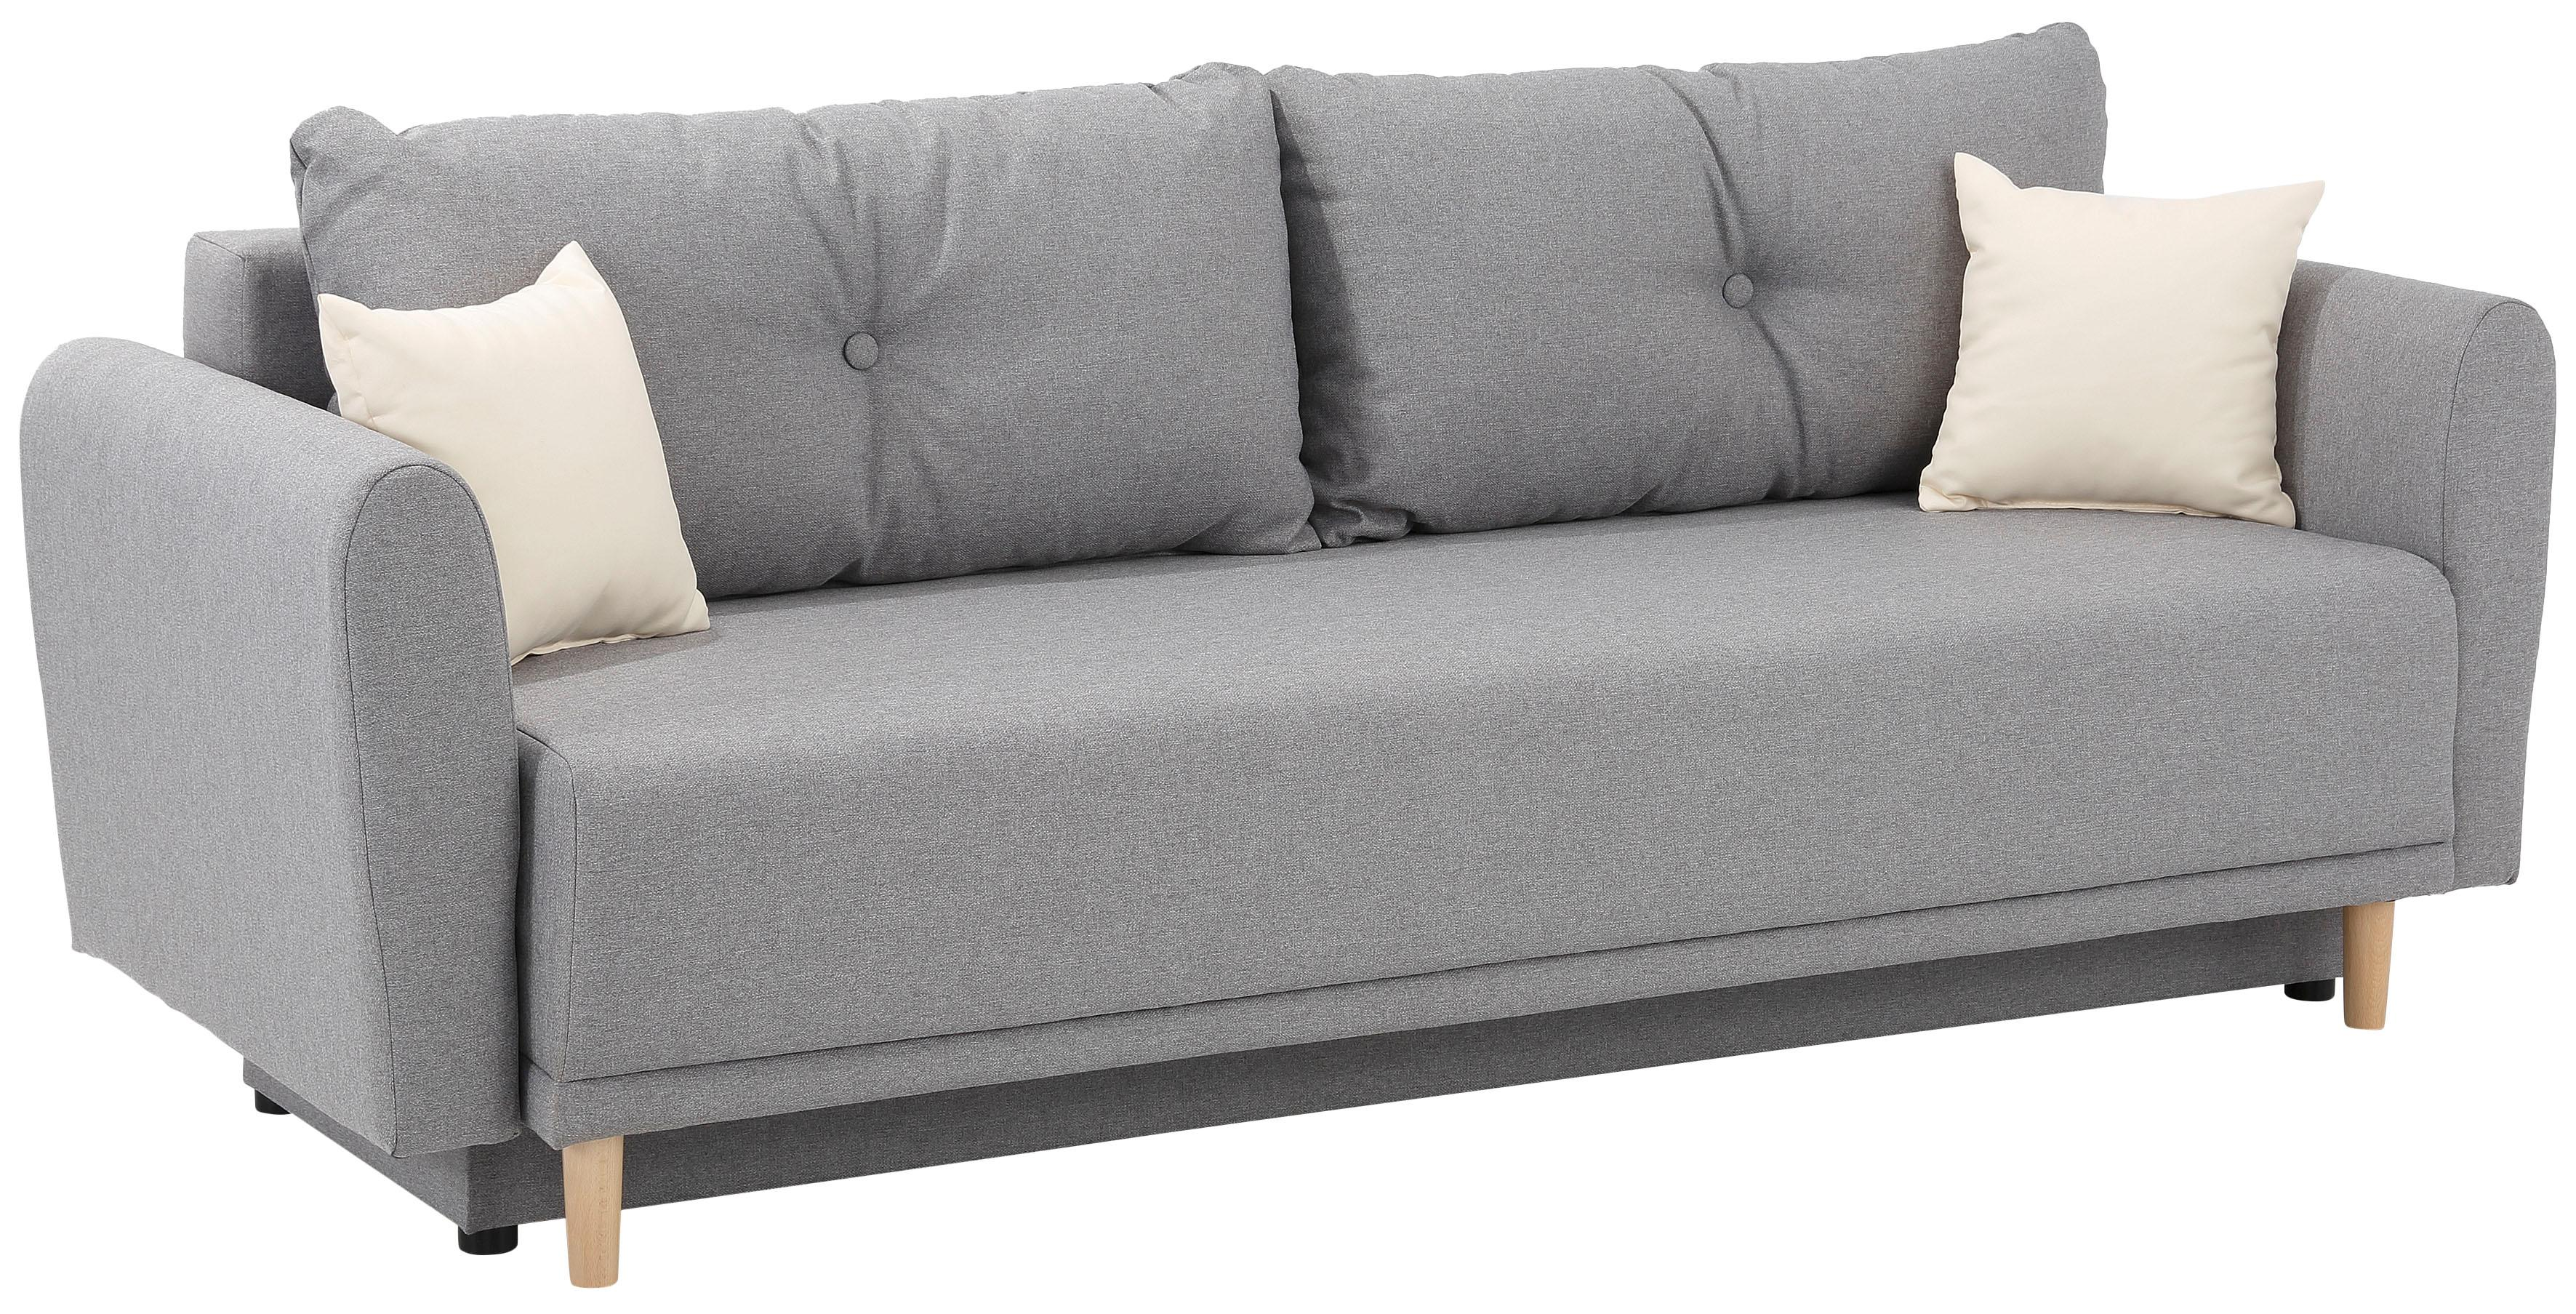 Home affaire Schlafsofa Scandic